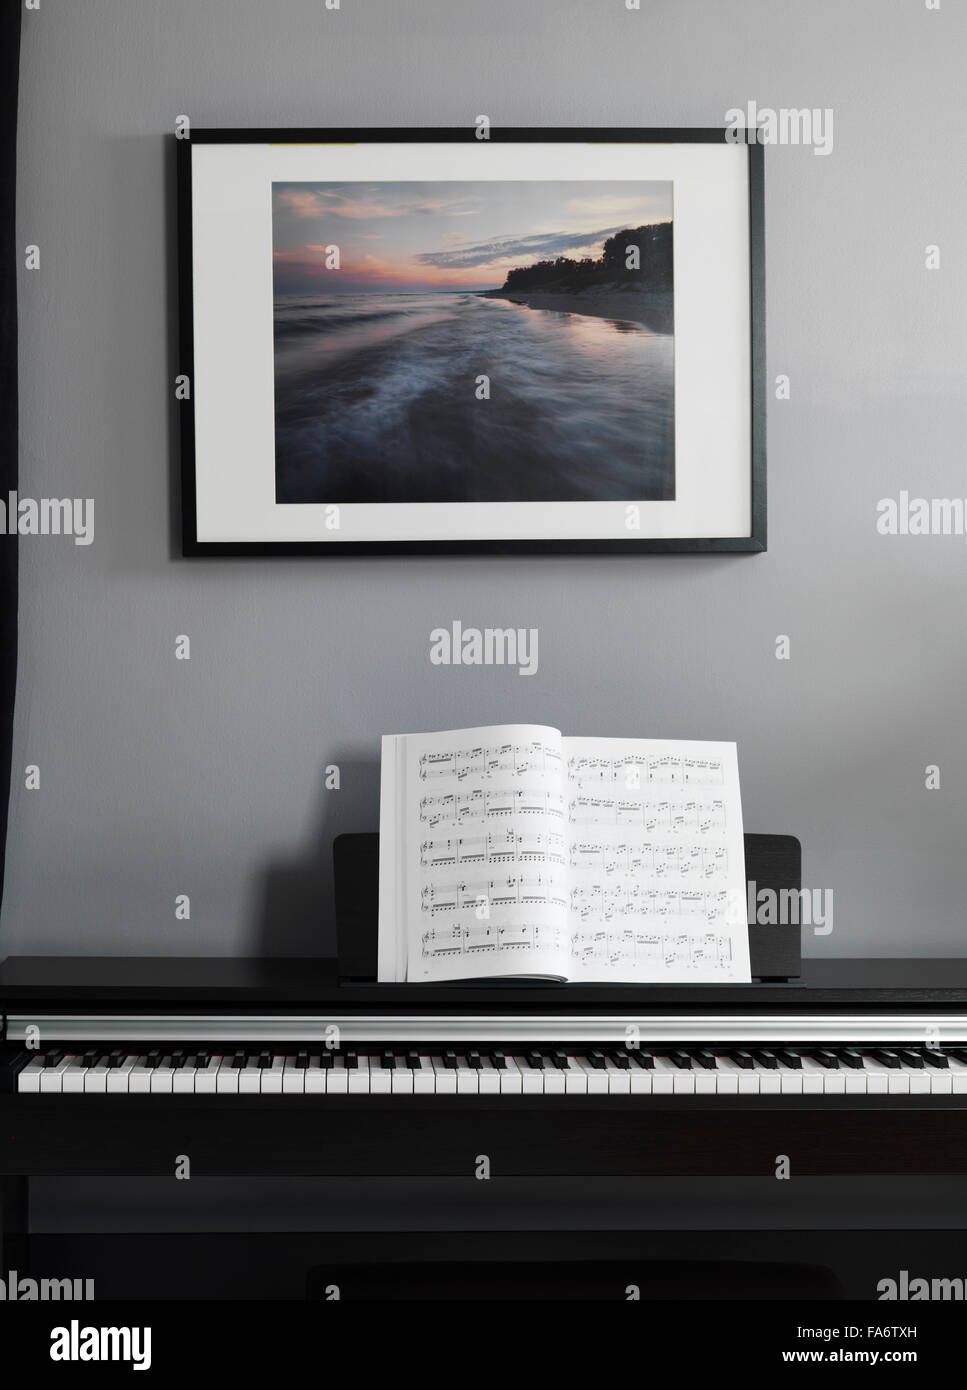 Digital piano keyboard with music scores in a room interior - Stock Image